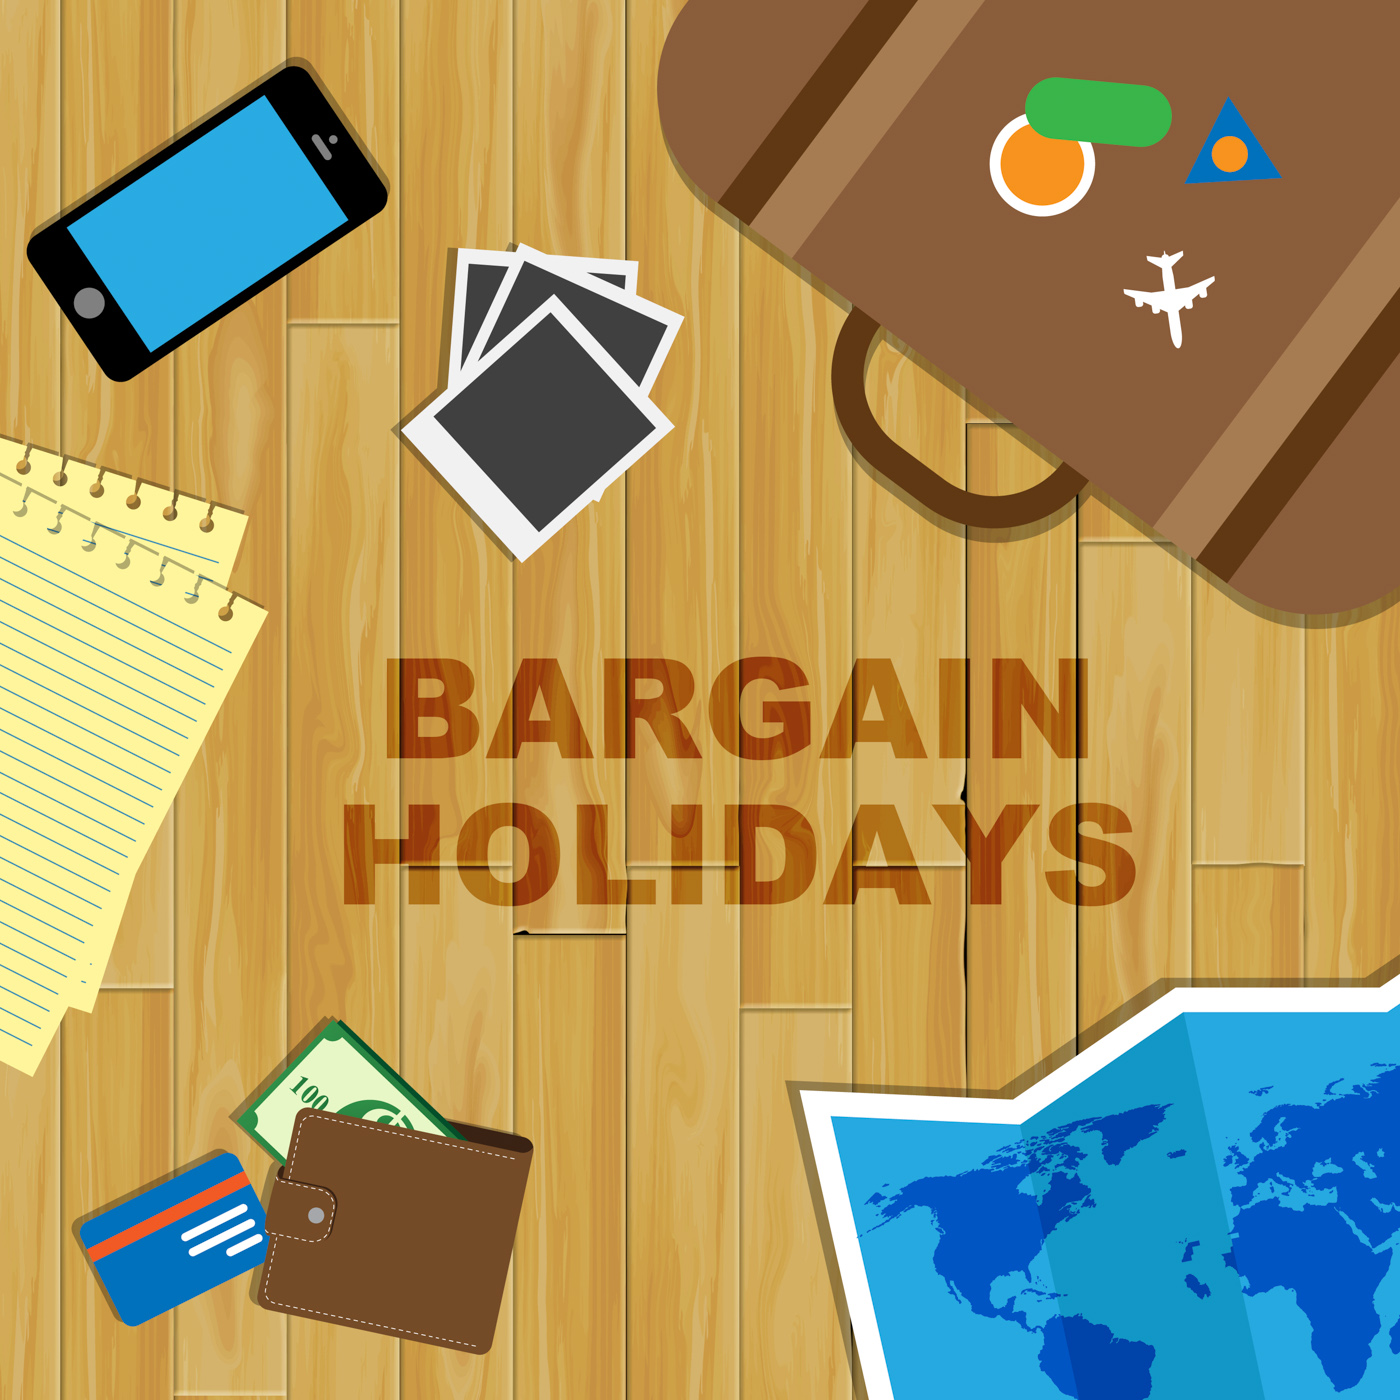 Bargain Holidays Indicates Time Off And Bargains, Bargain, Promotion, Vacationing, Vacational, HQ Photo